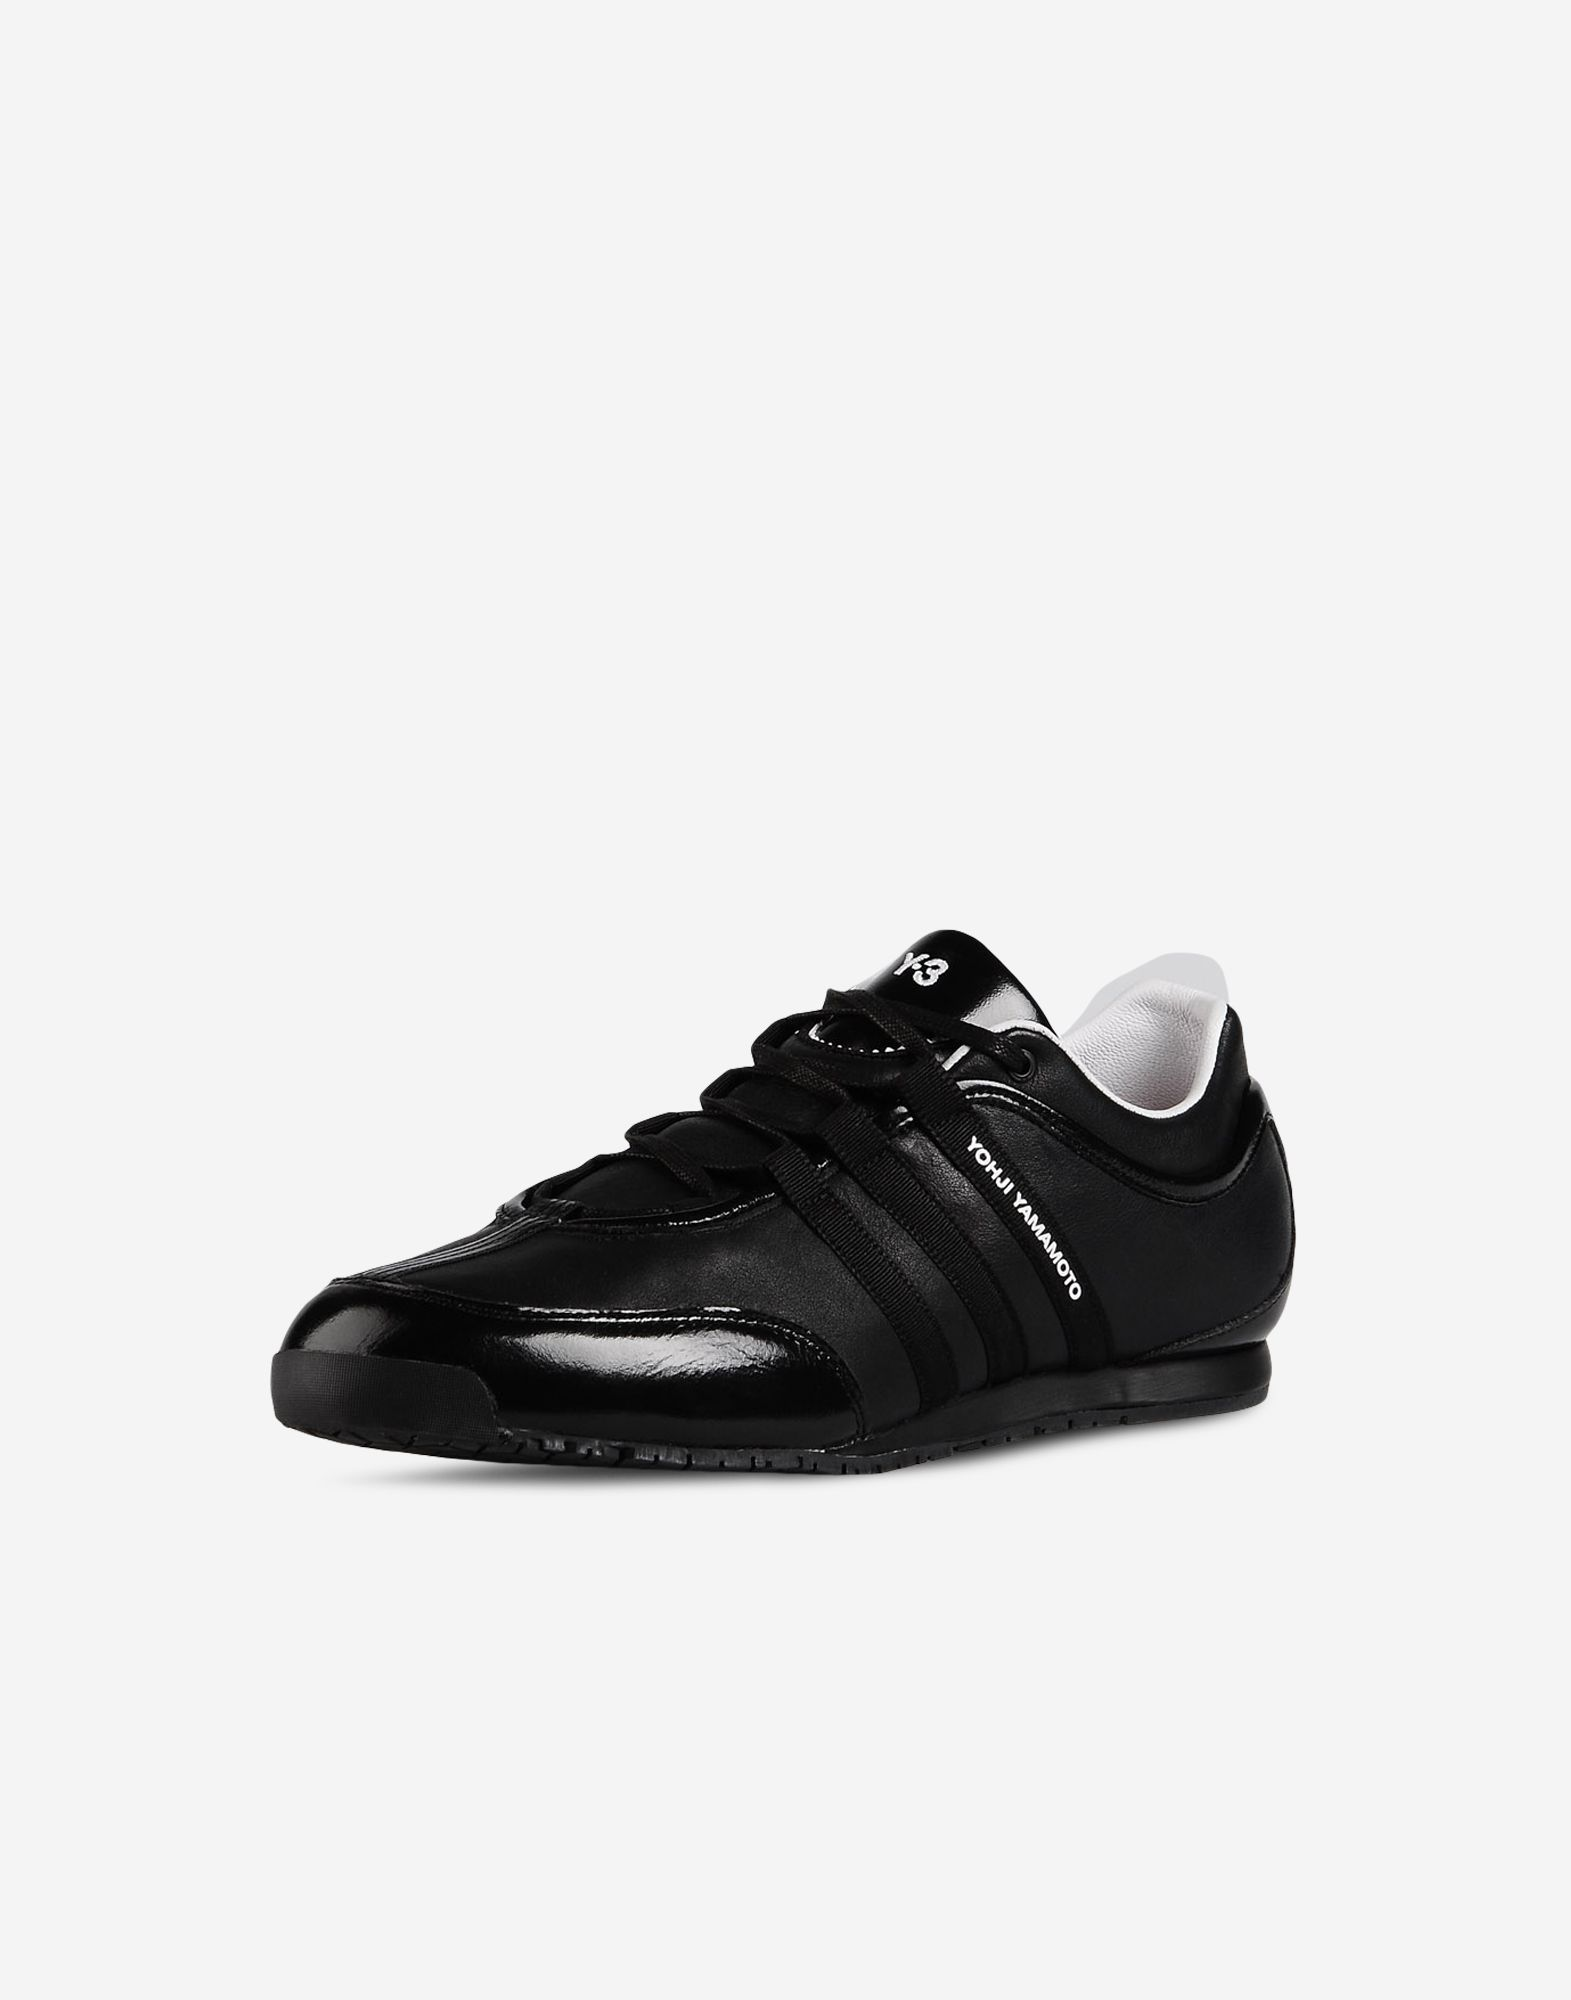 y 3 boxing classic ii for men adidas y 3 official store. Black Bedroom Furniture Sets. Home Design Ideas